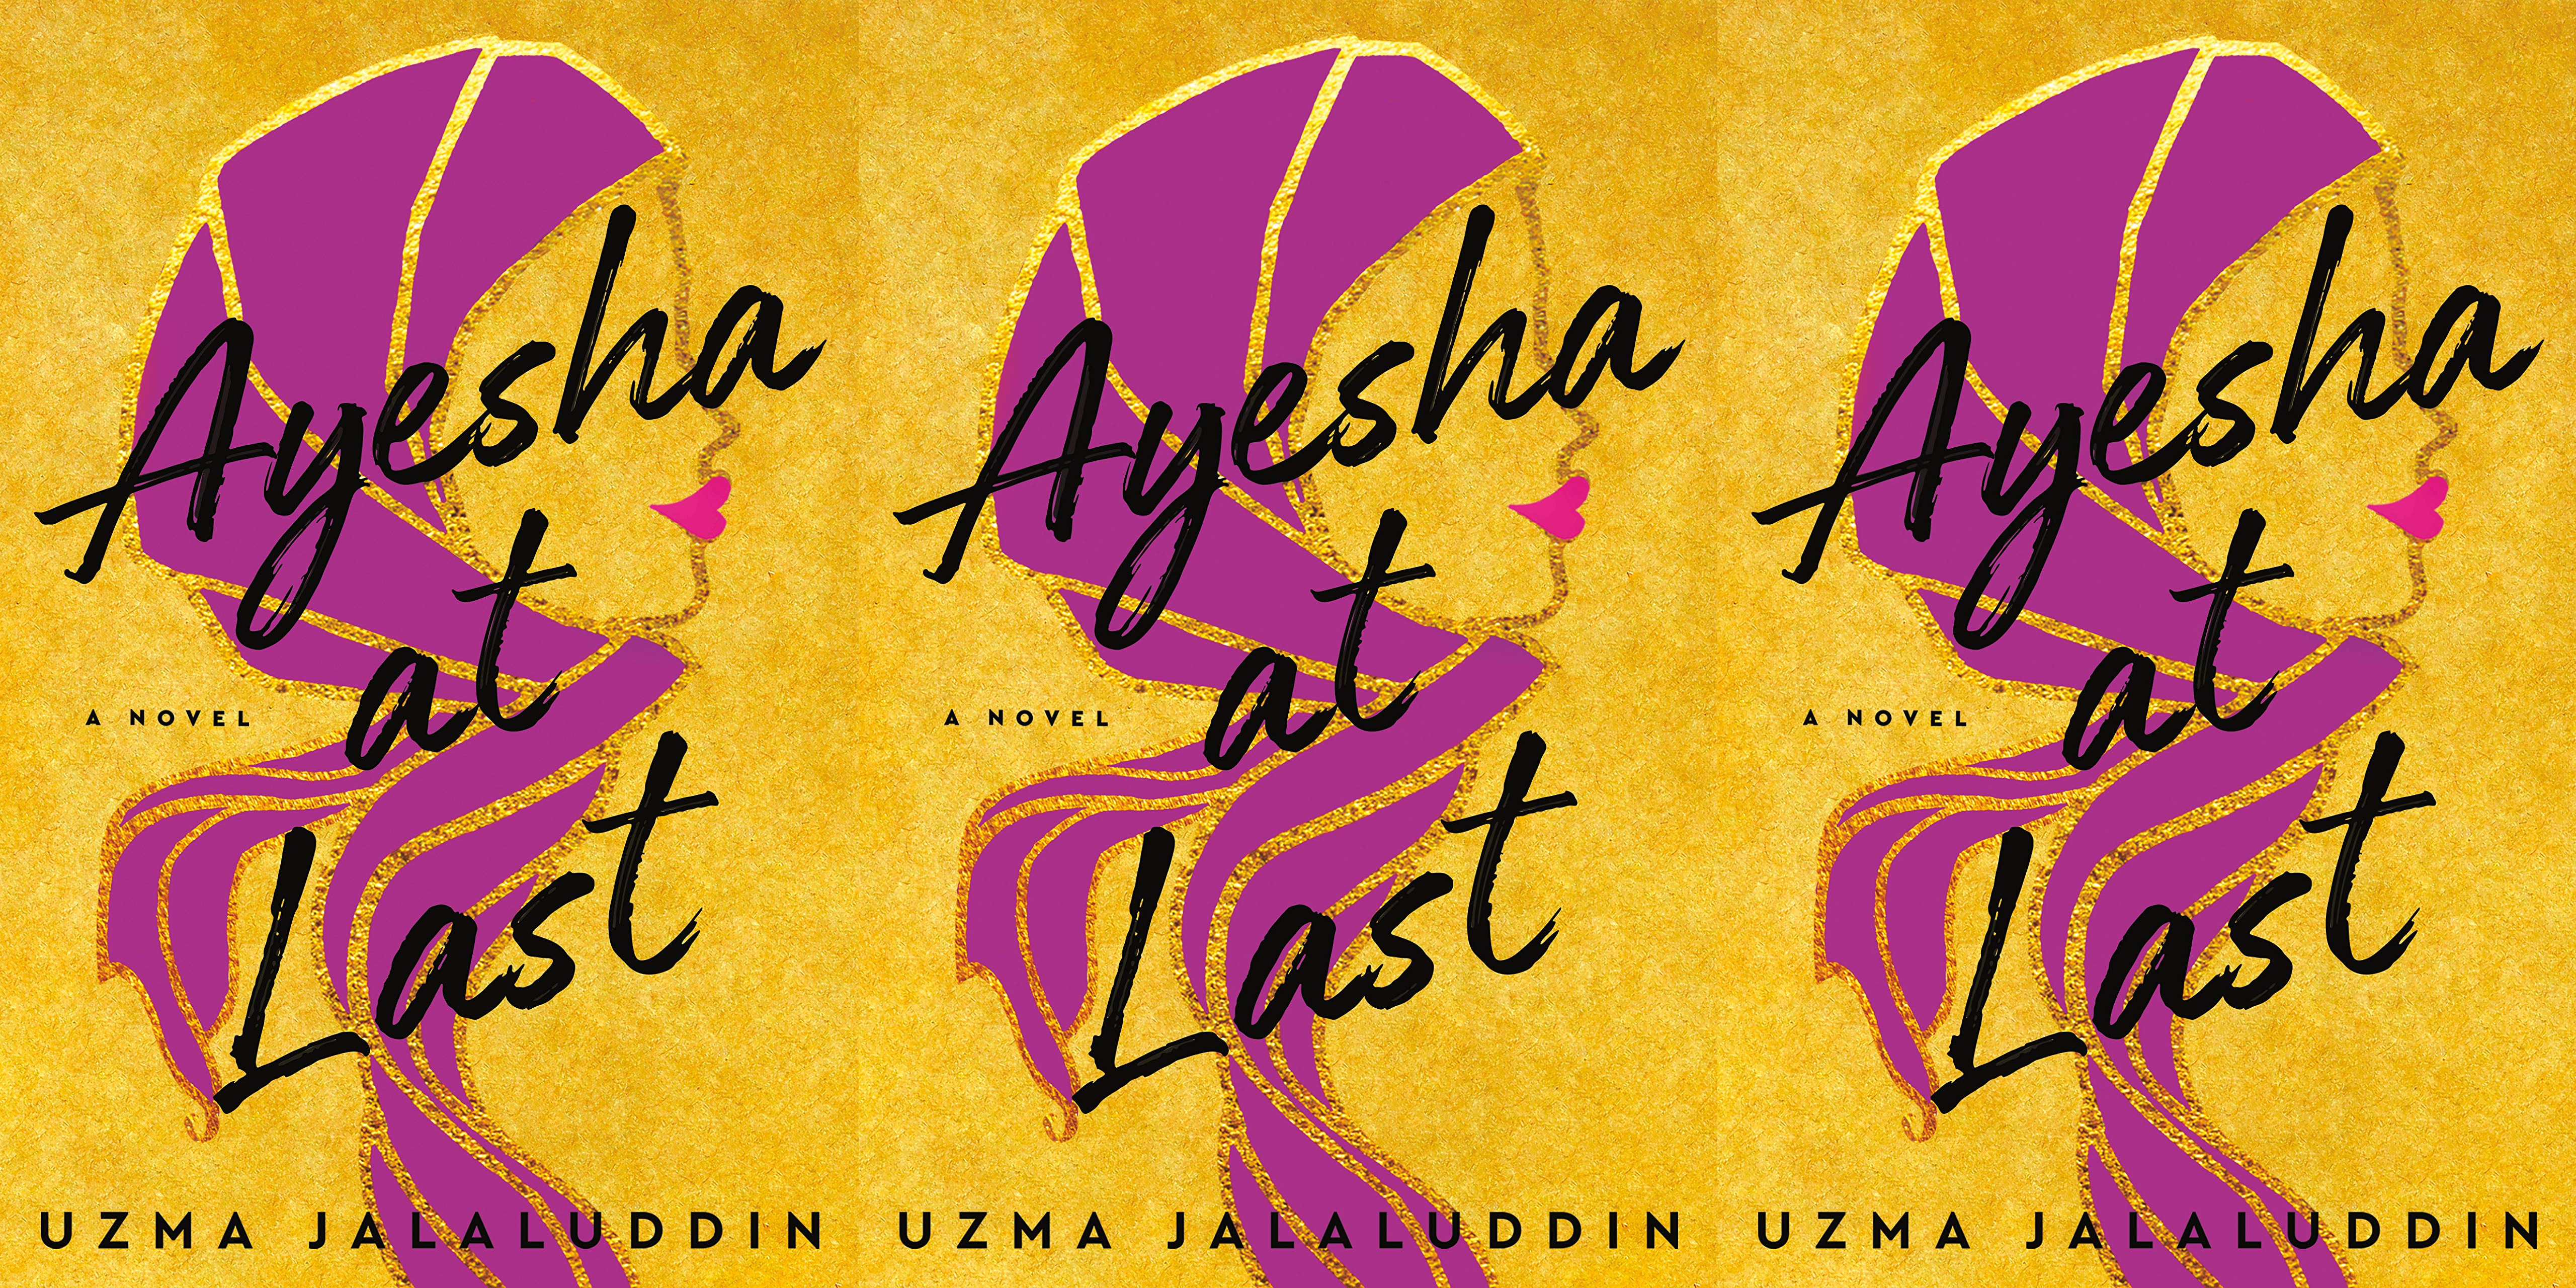 books inspired by jane austen, ayesha at last by uzma jalaluddin, books